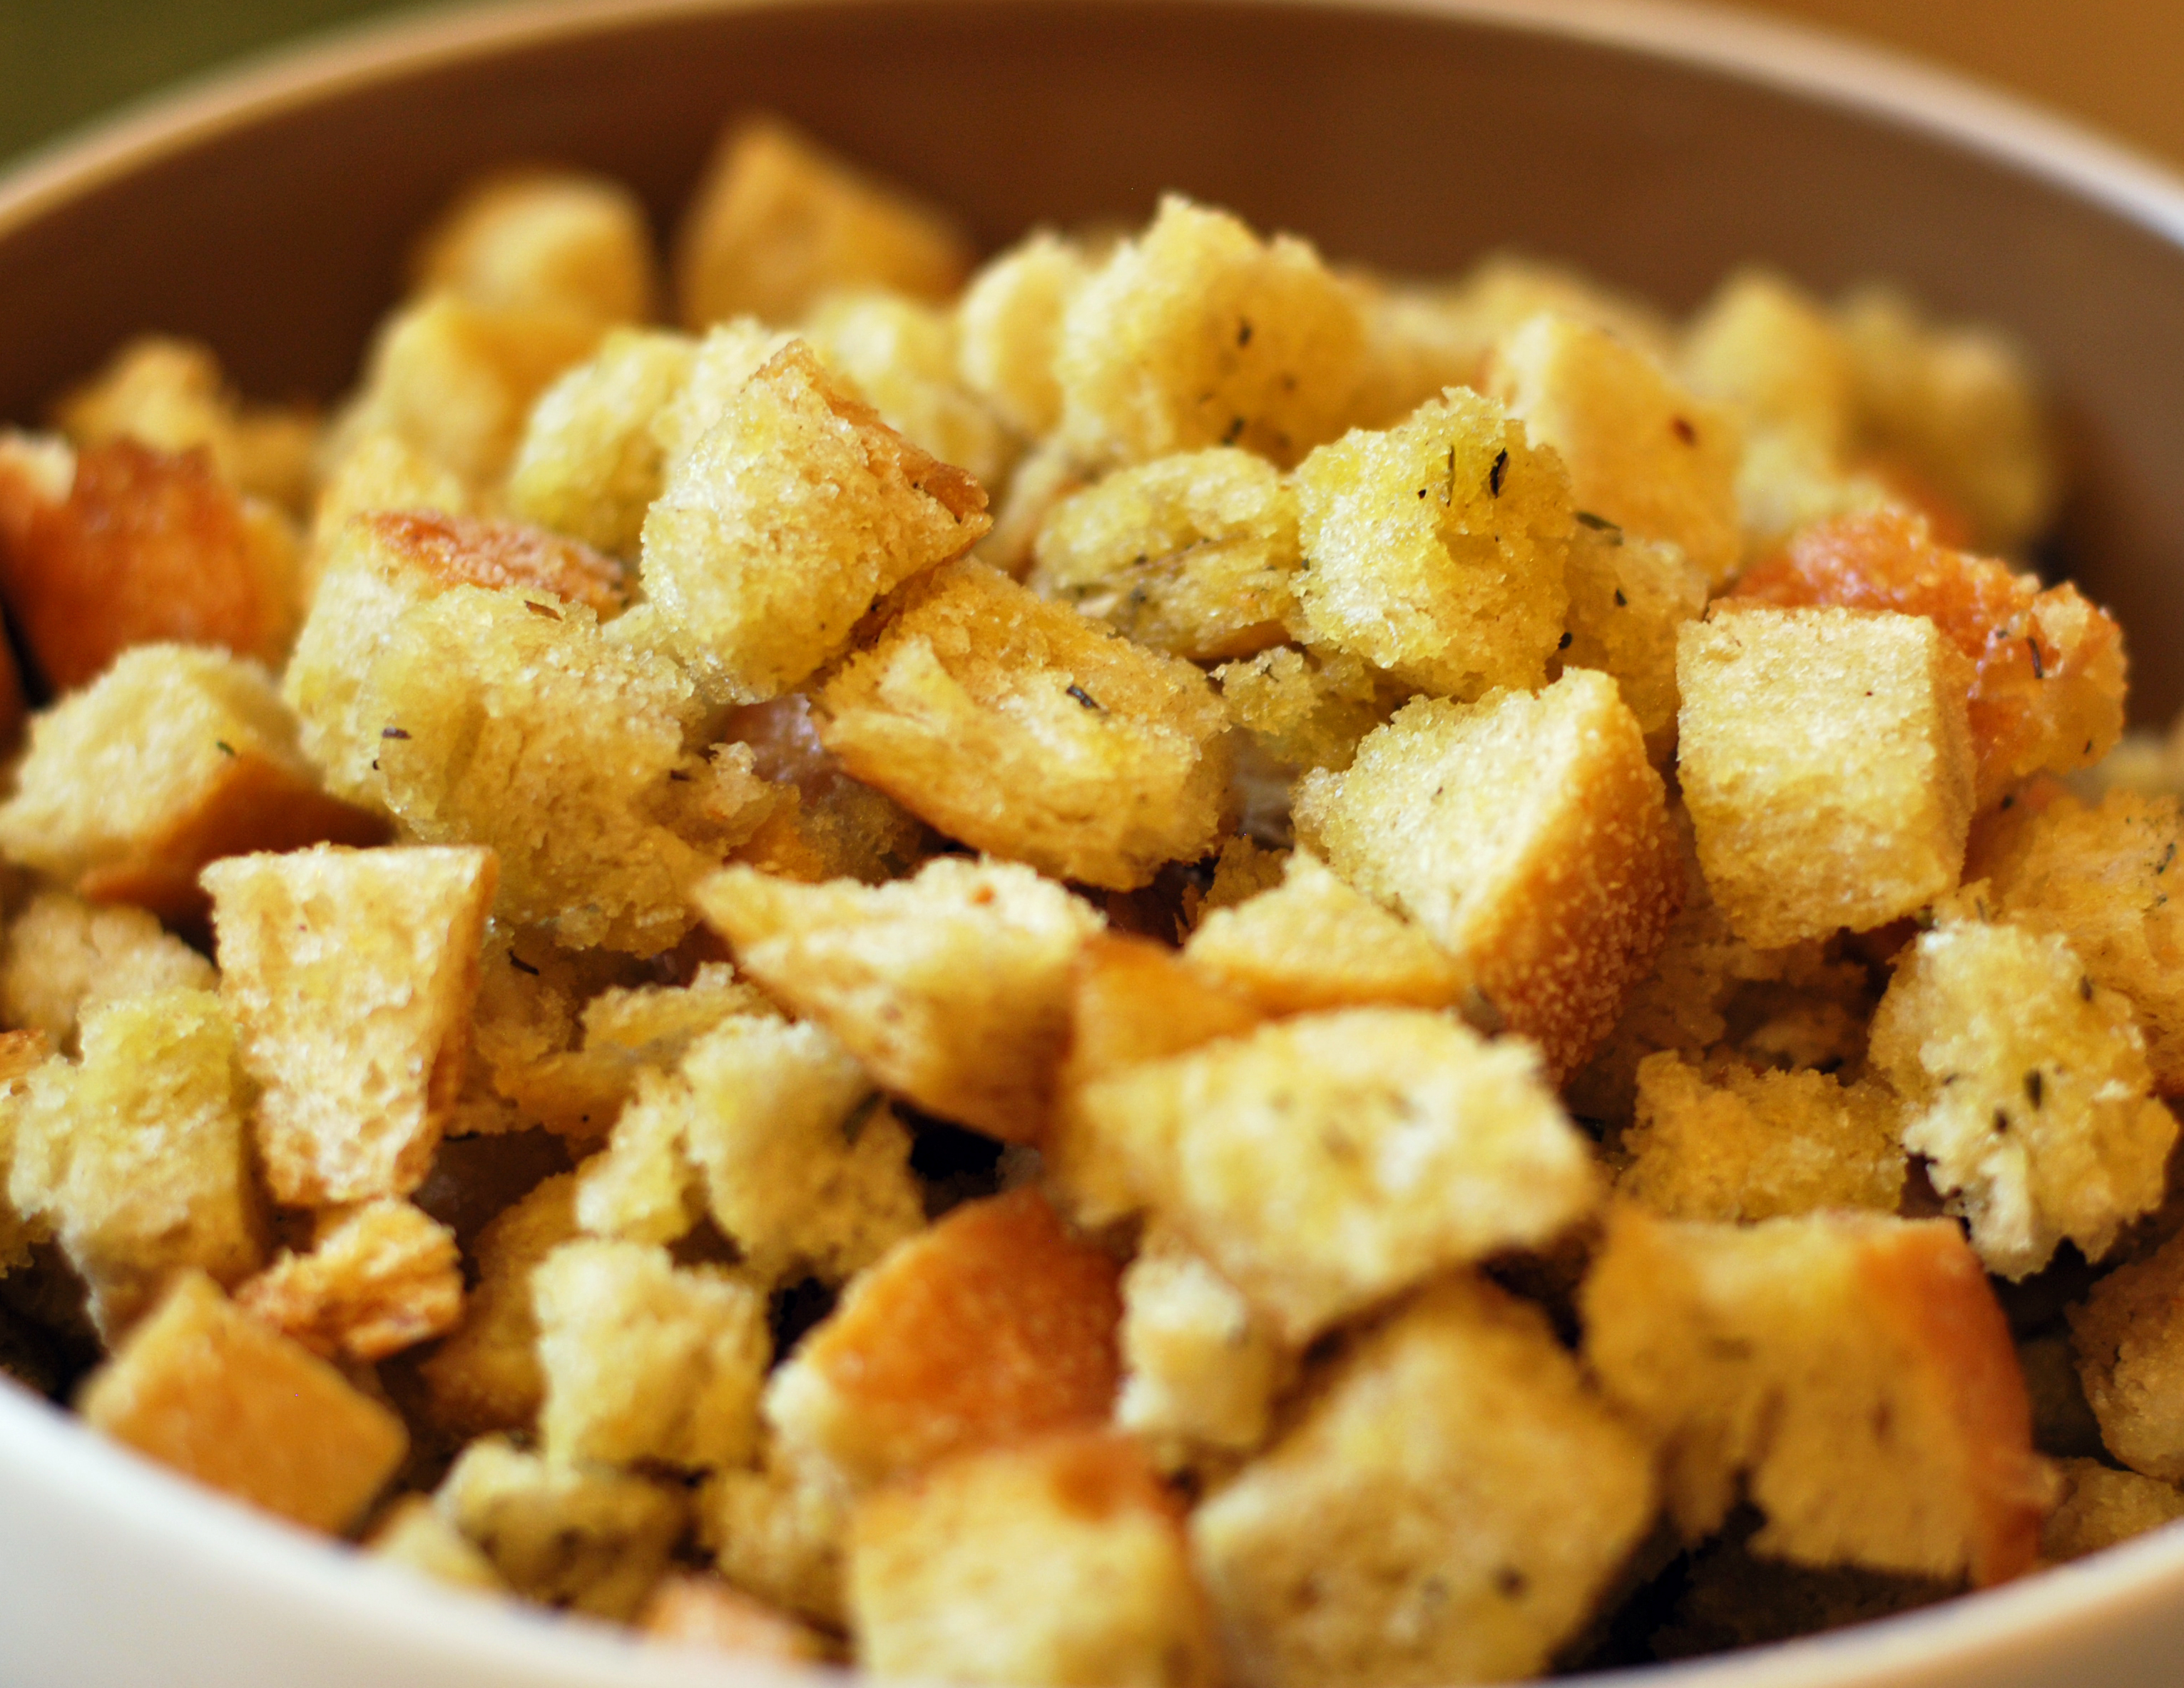 ... homemade garlic herb homemade garlic herb homemade sourdough croutons